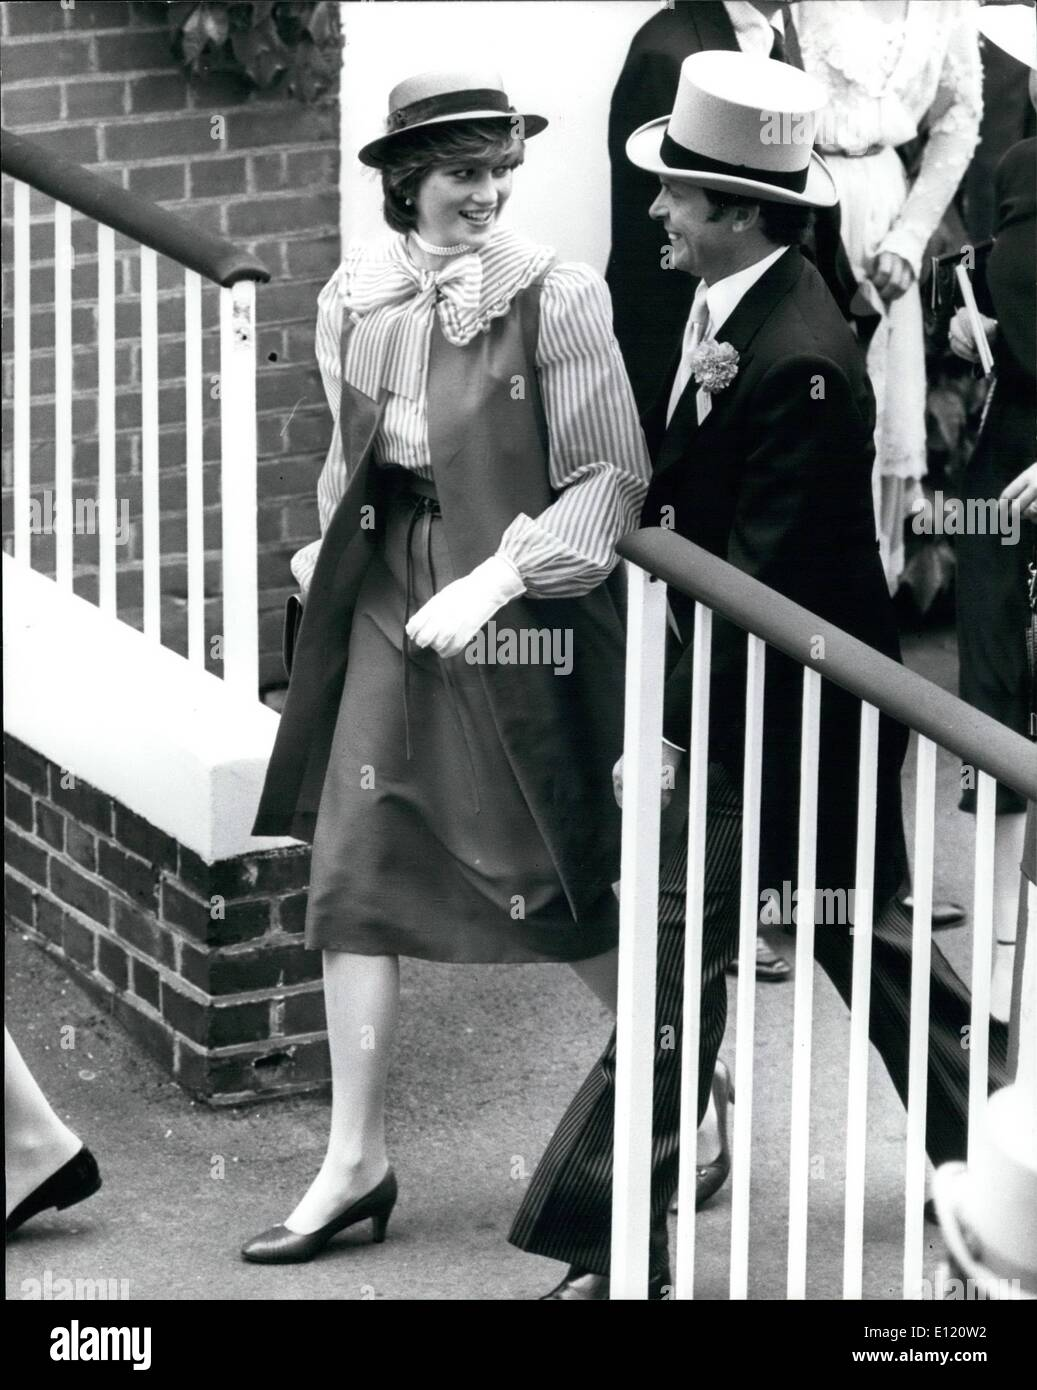 Jun. 06, 1981 - Lady Diana the Toast of Ladies' Day at Ascot Lady Diana Spencer was the toast of Ladies' Day at Royal Ascot yesterday. She is seen walking with her detective, Inspector Graham White, wearing a red straw boater and red and white candy striped blouse. - Stock Image